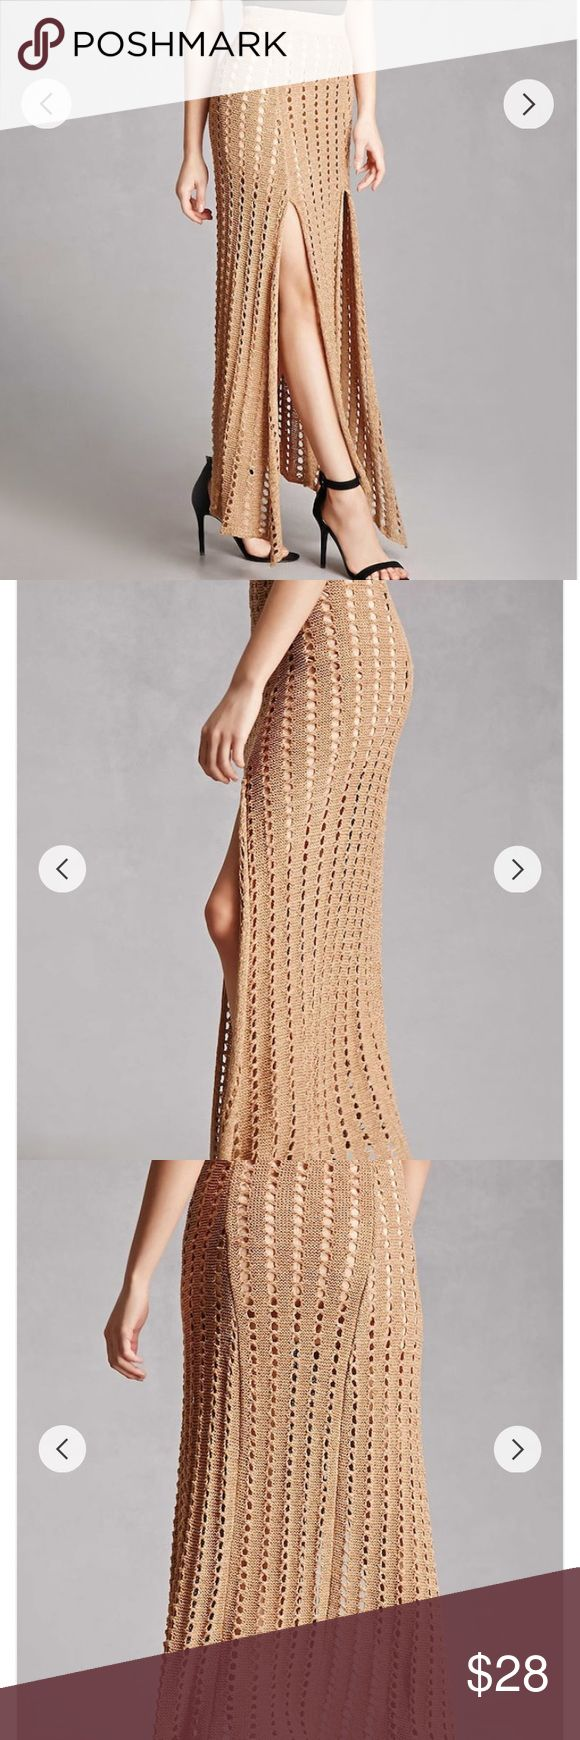 Selfie Leslie Crochet maxi skirt Cute maxi dress by selfie Leslie  Has two slits on the sides  Made with very good quality material  Super cute for the summer. It is new with tags! Skirts Maxi